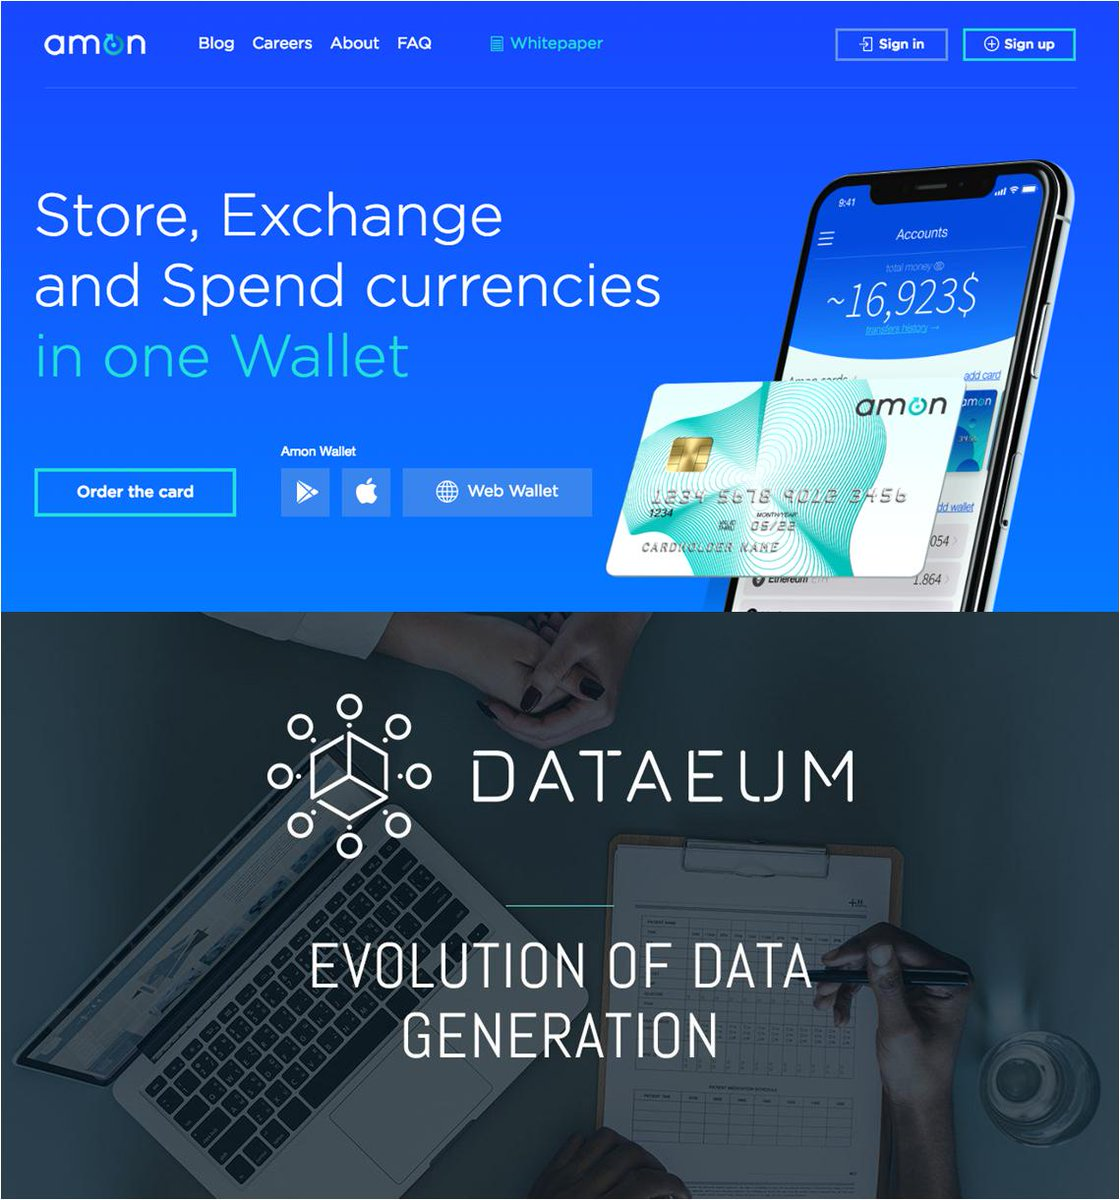 "#Blockchain opportunities: Amon .tech: an ""all-in-one"" wallet to Store, Exchange, Spend, Lend and Invest. Round: 1M€ for 20% equity.  Dataeum: crowdsourcing for data generation. Round: 8M€ hard cap. Already raised 1.5M€ #investment #fundraising #funding #startup #investors"